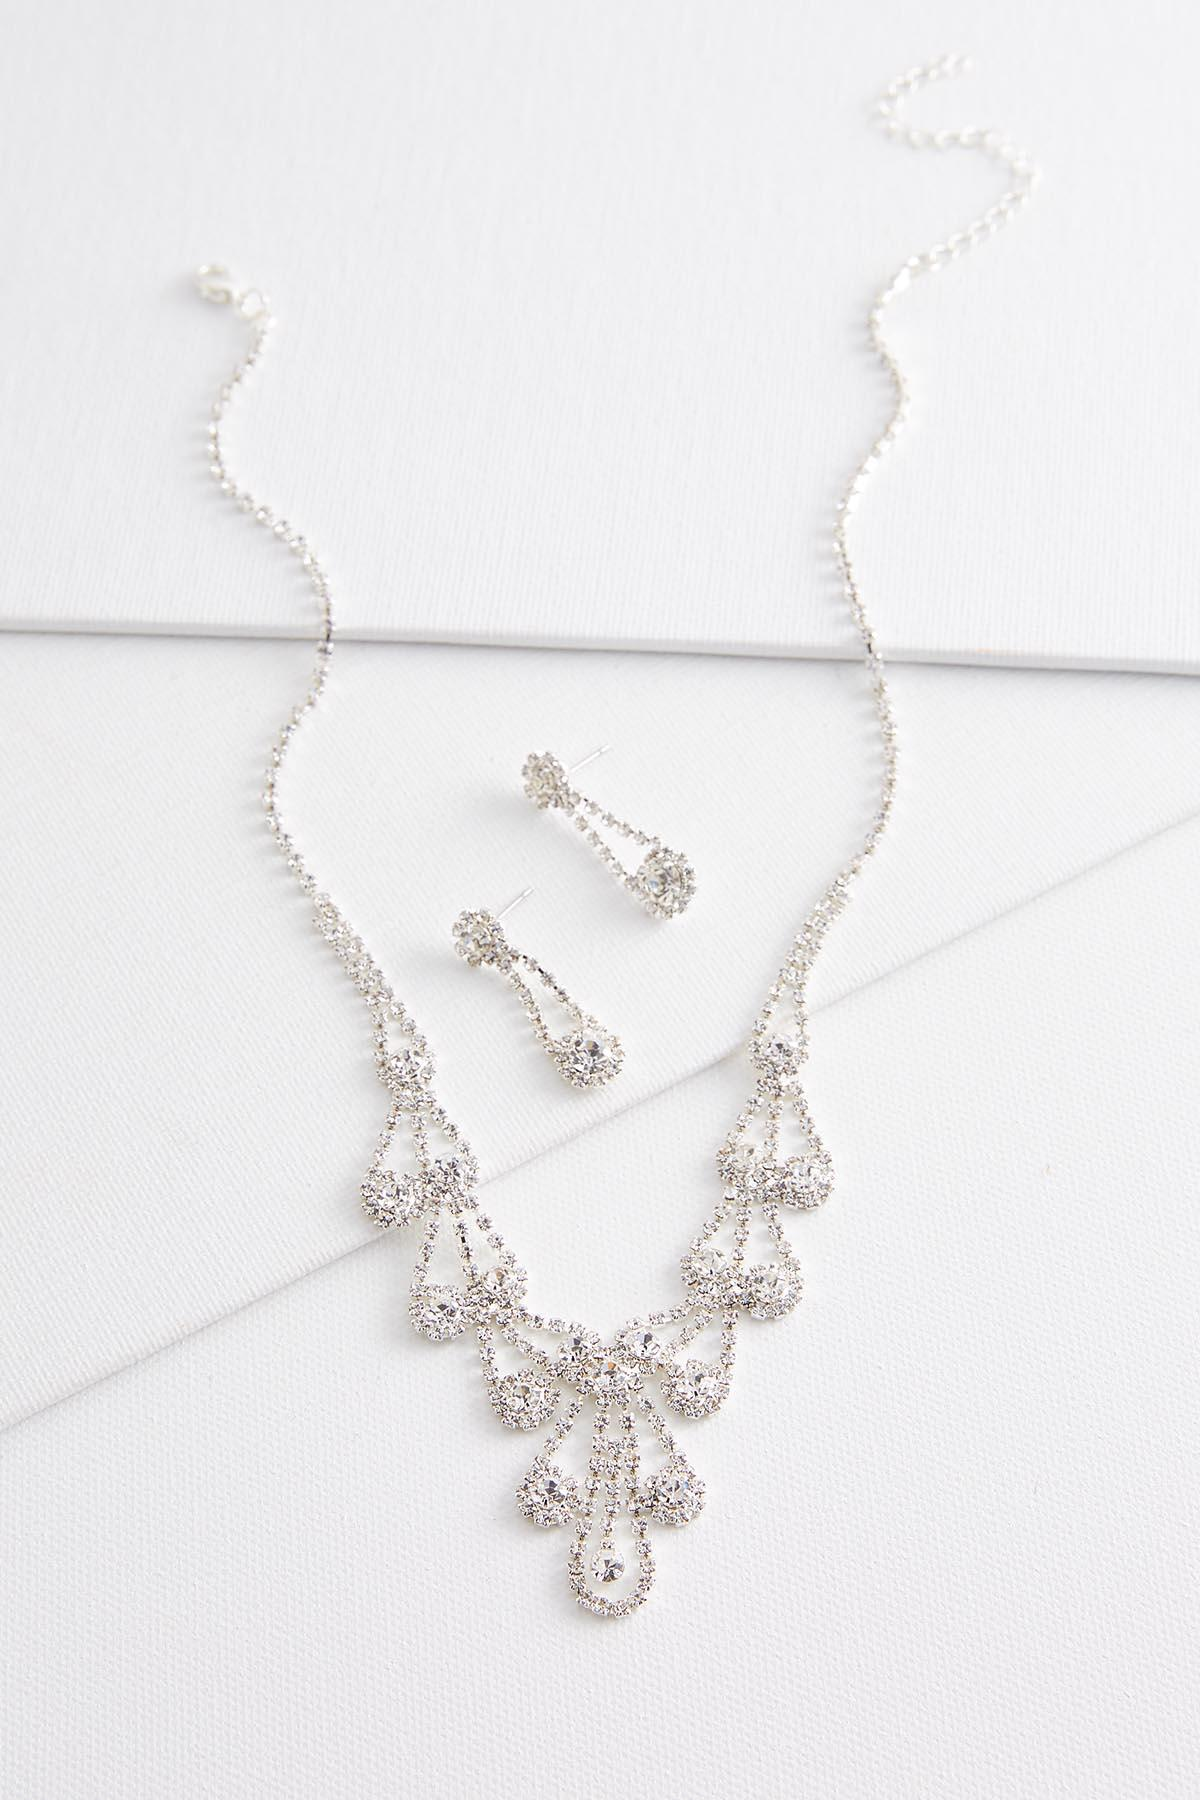 Halo Stone Bib And Earrings Set